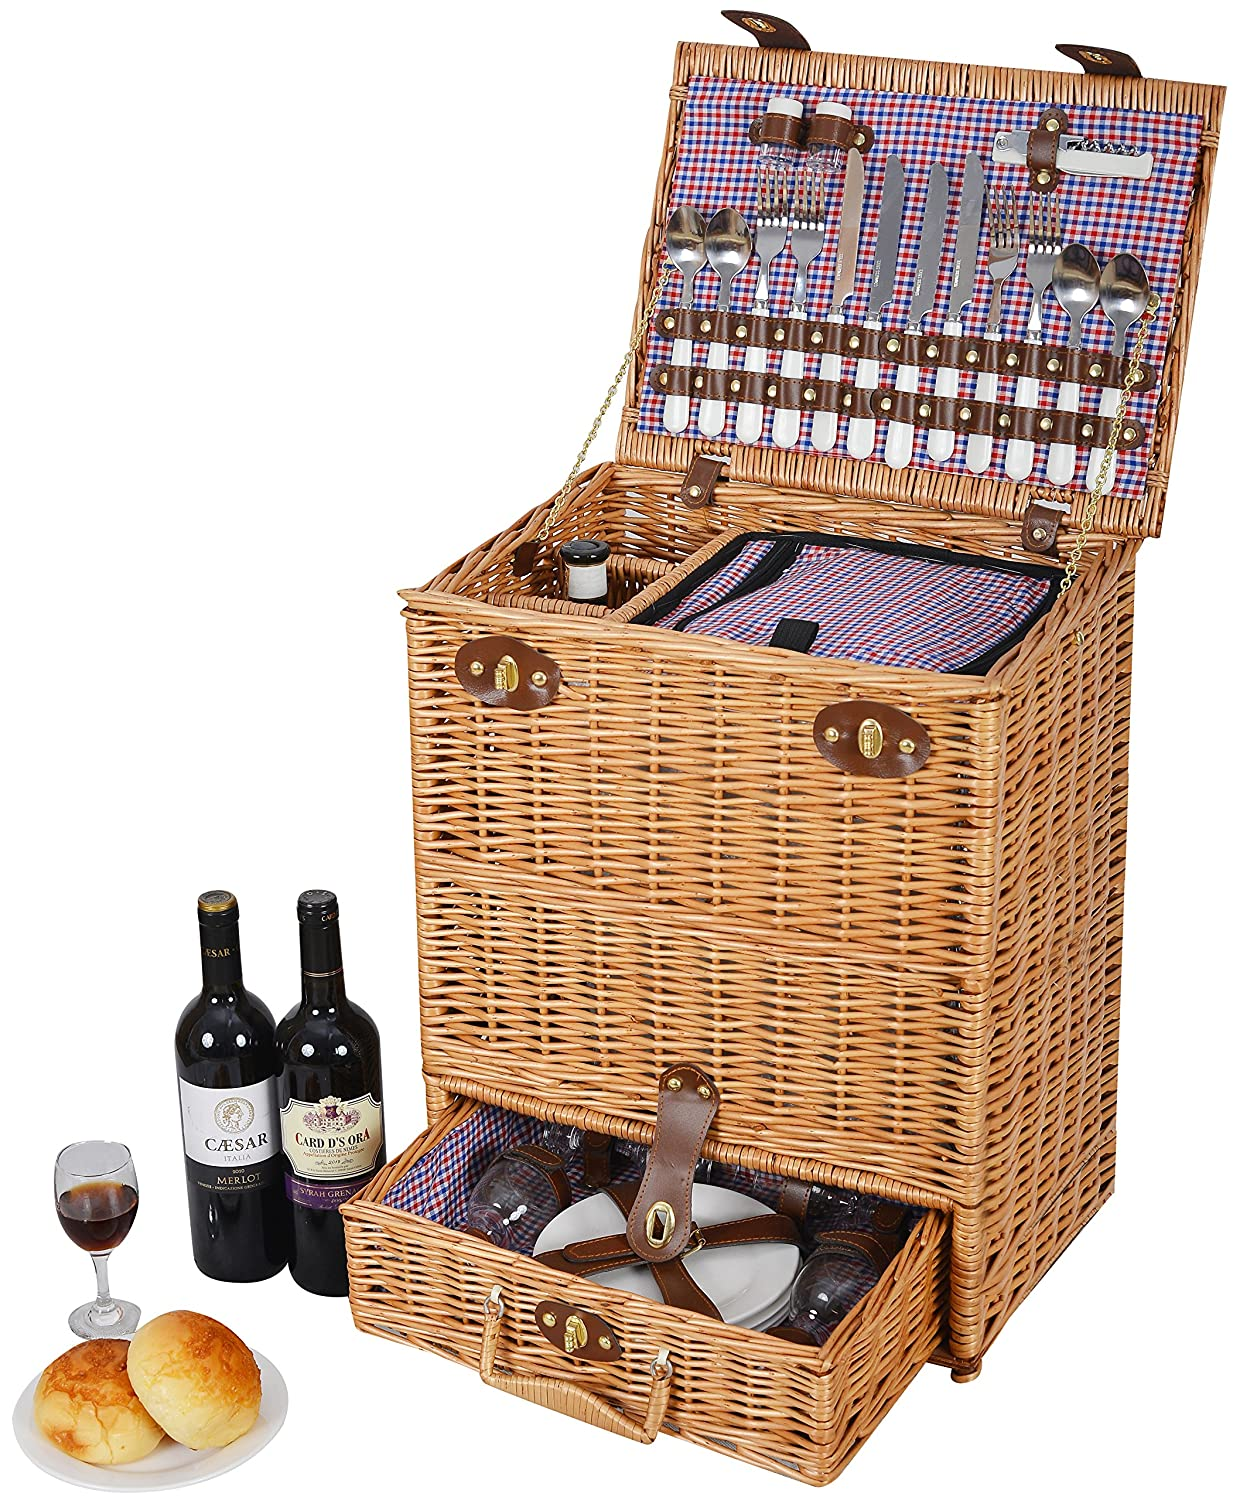 Cutlery with Telescopic Handle and Wheels Vivo Country /© Ultimate 4 Person Picnic Basket